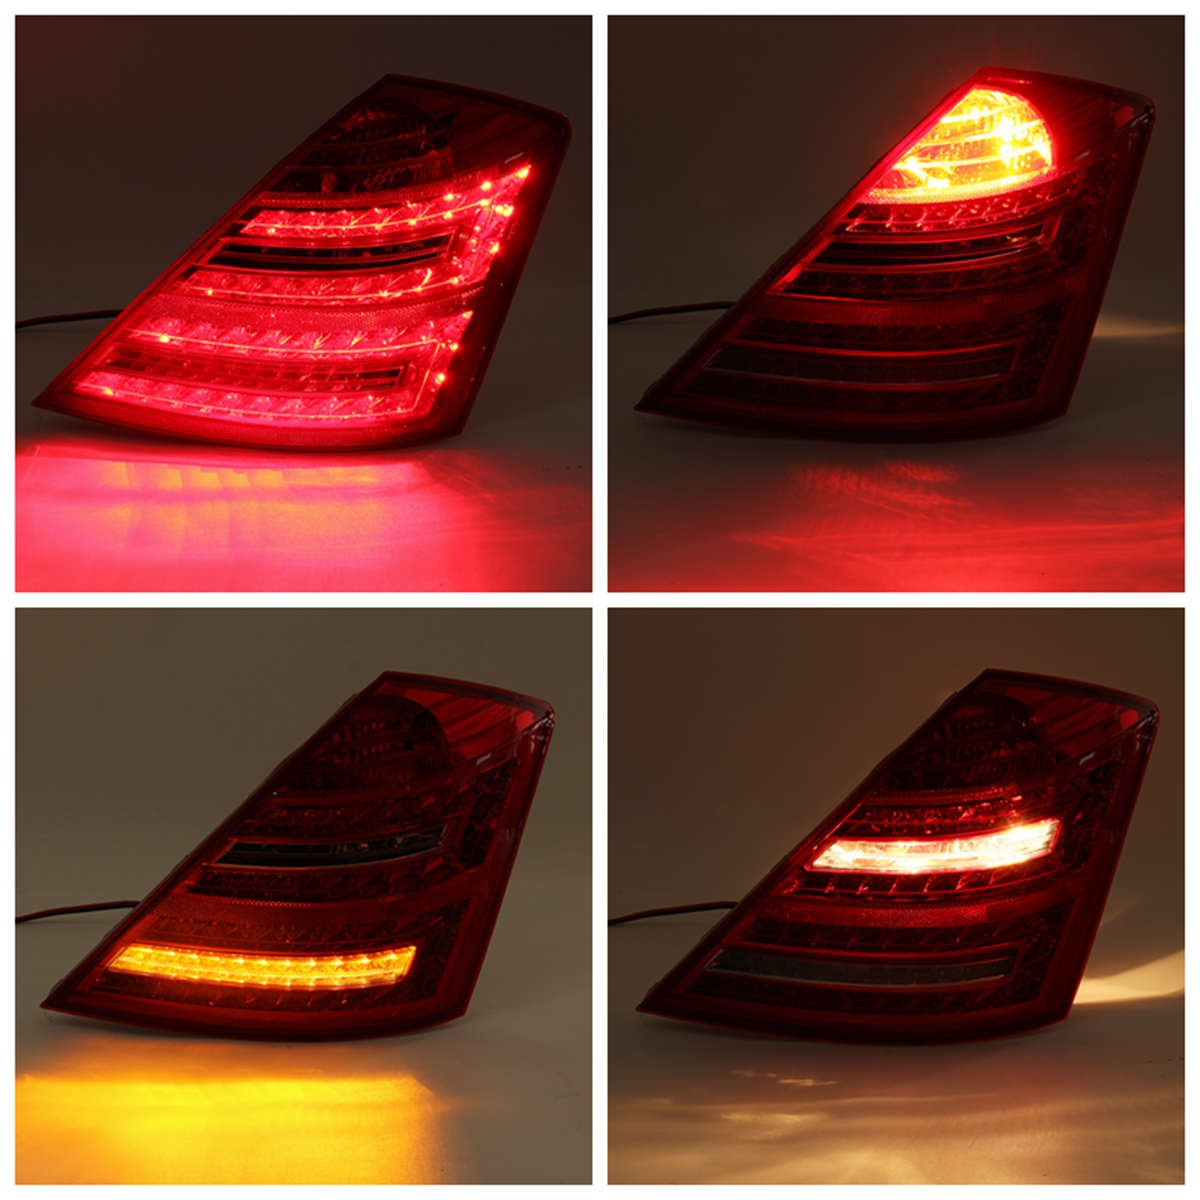 Car LED Tail Light Assembly Brake Lamp with Bulb Red Pair for Mercedes Benz W221 S Class 2006-2008